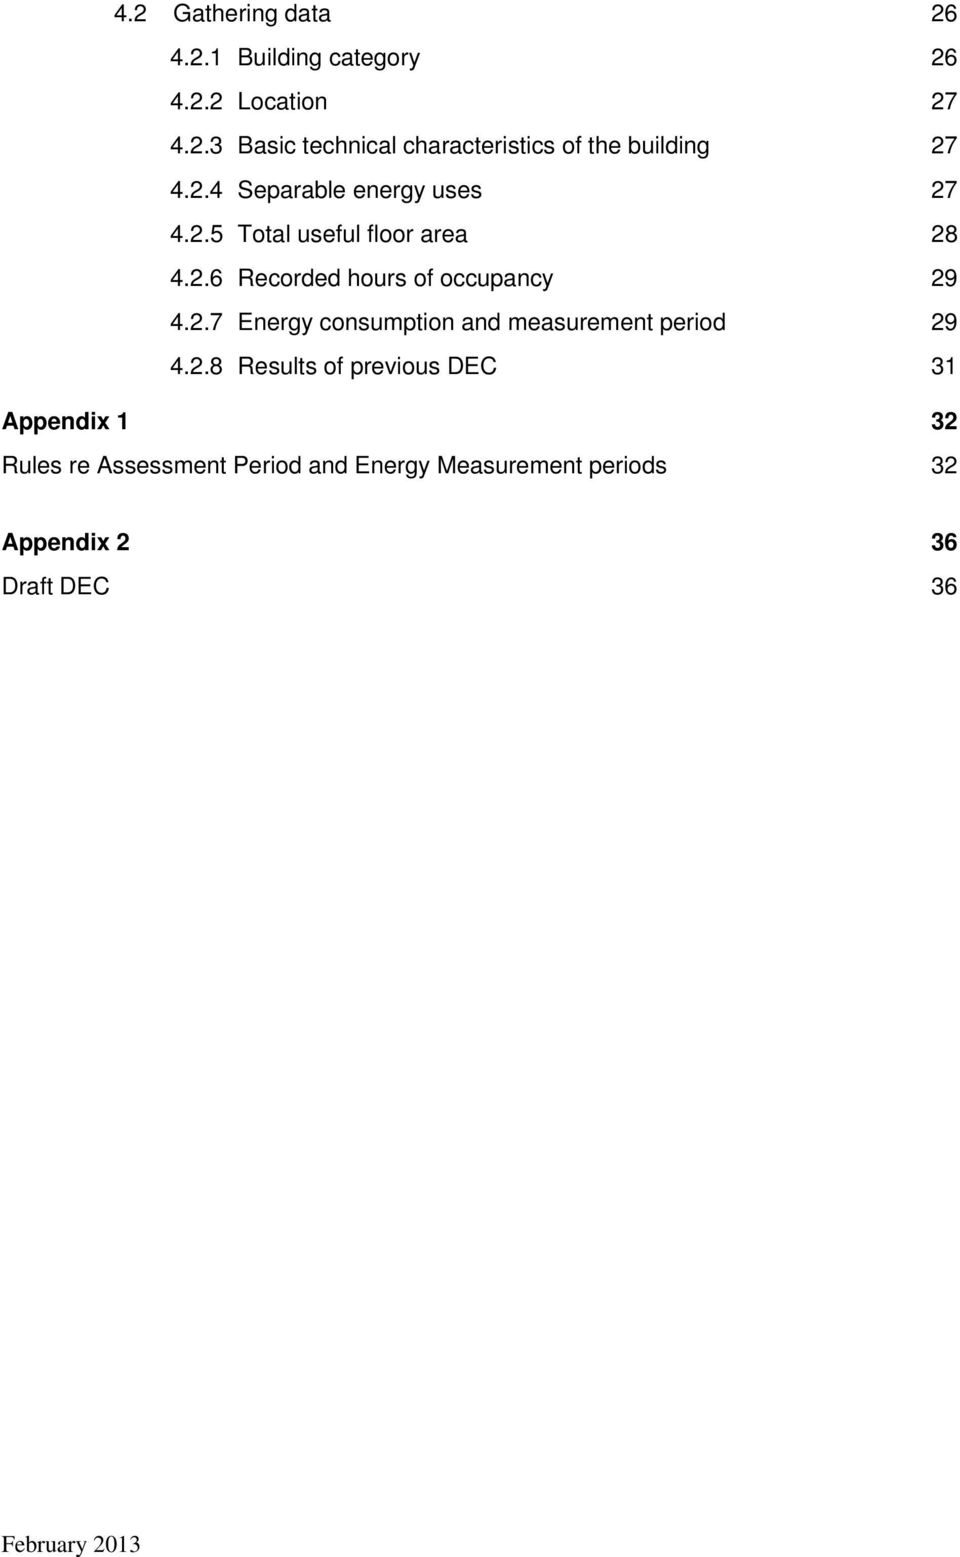 2.8 Results of previous DEC 31 Appendix 1 32 Rules re Assessment Period and Energy Measurement periods